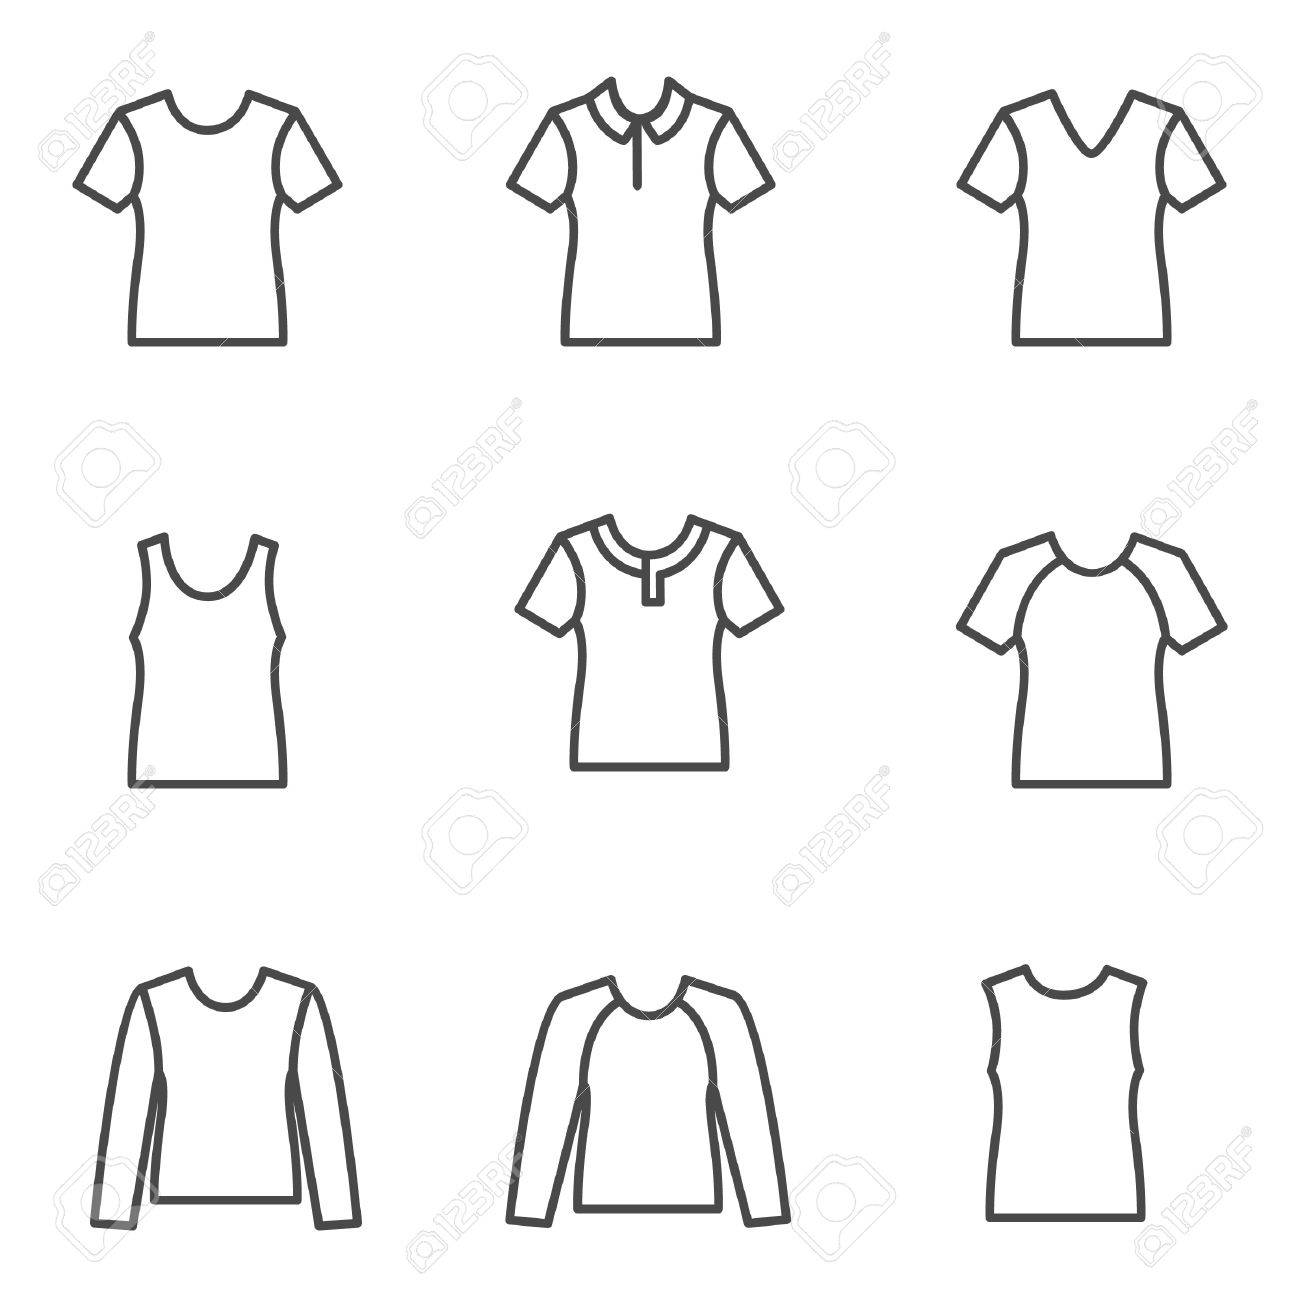 Different Types Of Man S T Shirts As Line Icons Royalty Free